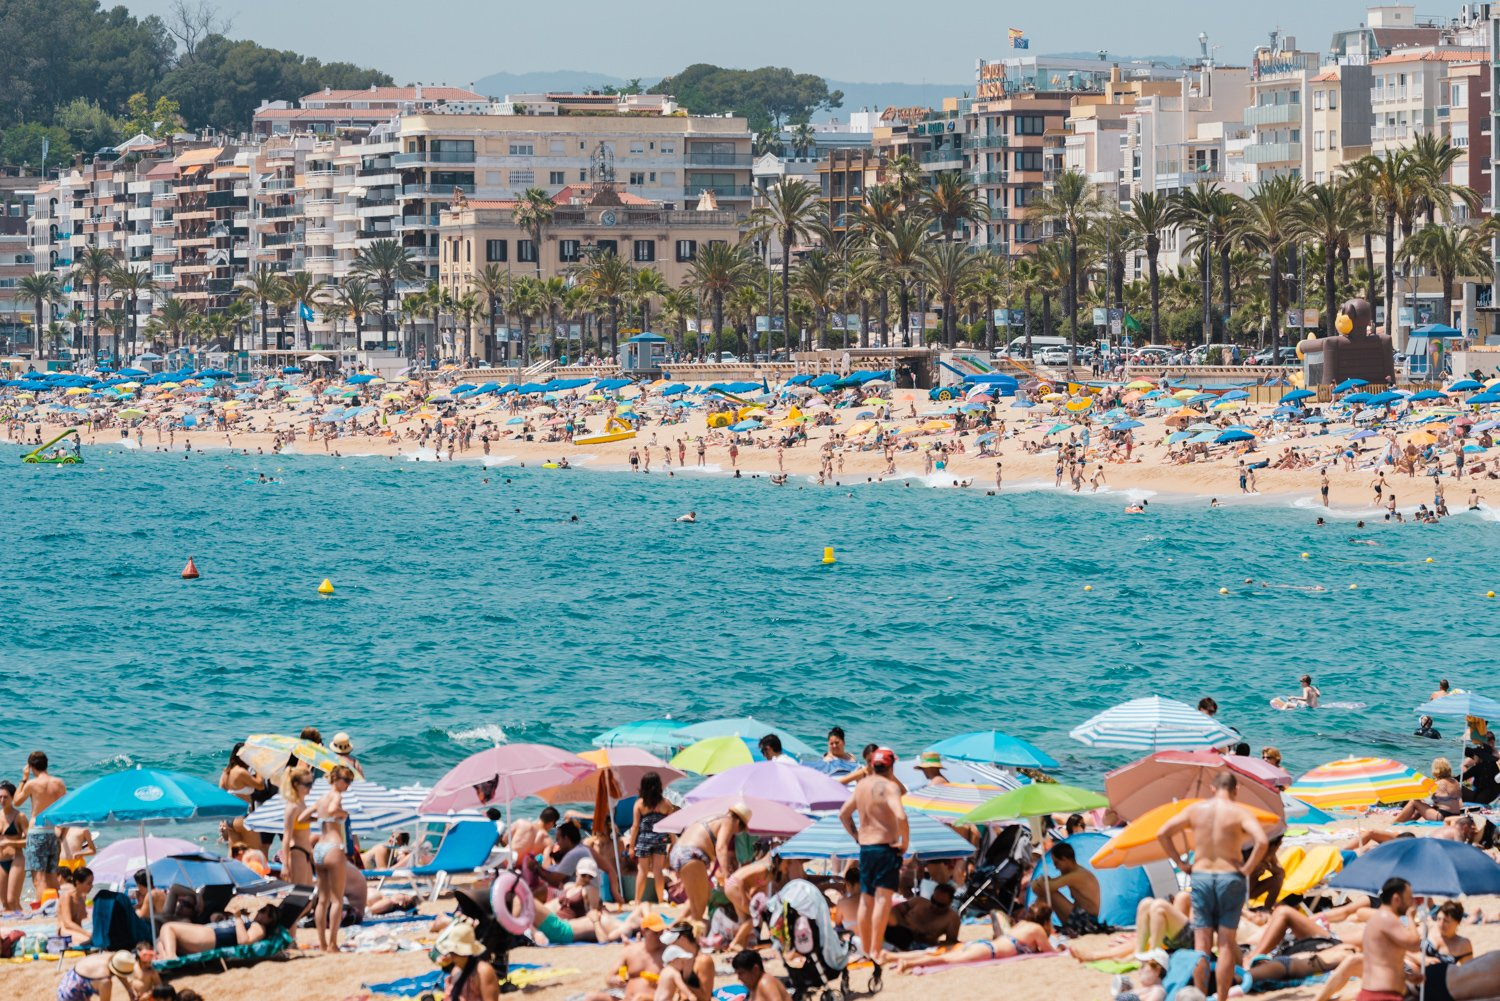 Crowds of people on either side of beaches at Lloret de Mar in a white fine art frame